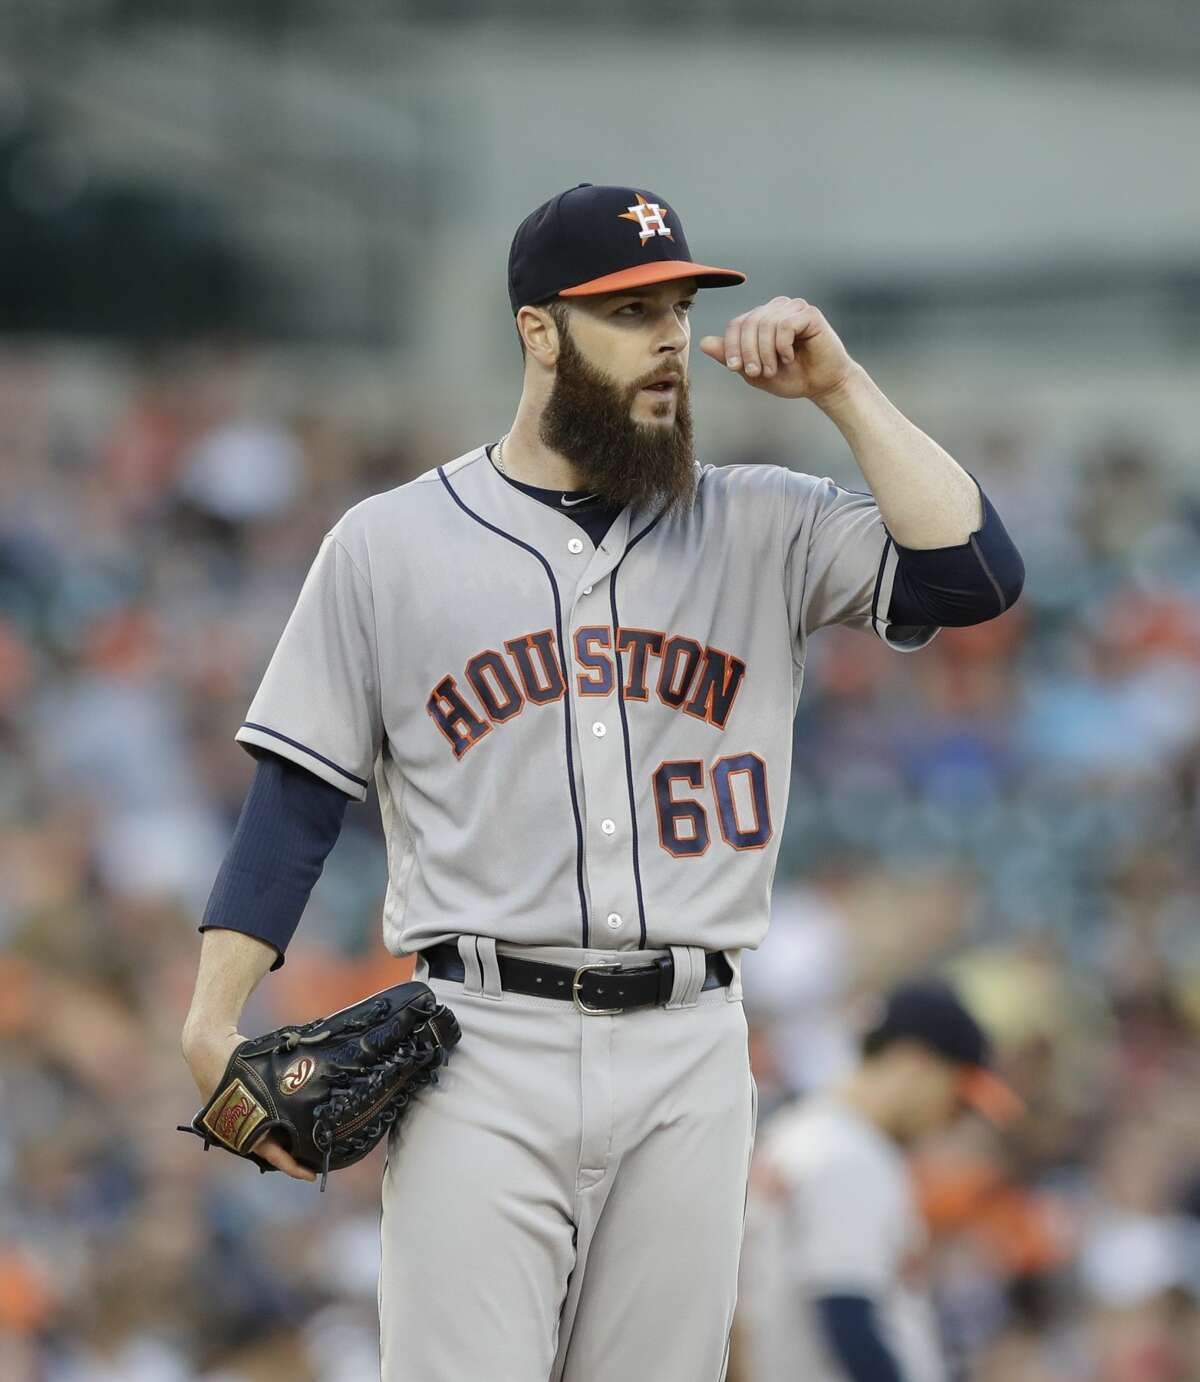 Starting pitcher Dallas Keuchel said he wishes the front office would have been able to make a big move before the trade deadline.